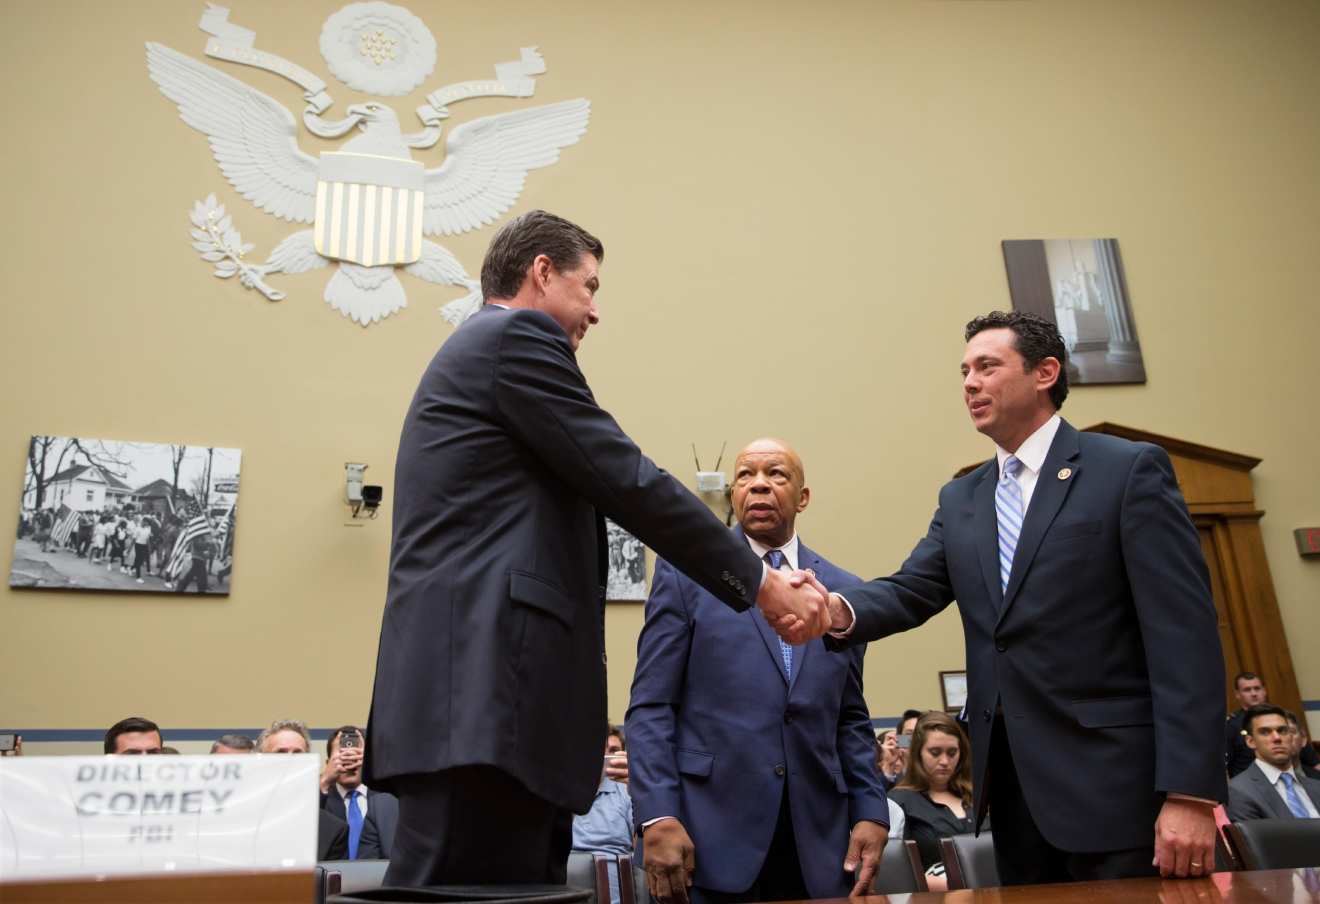 House Oversight and Government Reform Committee Chairman Rep. Jason Chaffetz, R-Utah, right, accompanied by the committee's ranking member Rep. Elijah Cummings, D-Md., center, welcome FBI Director James Comey, on Capitol Hill in Washington, Thursday, July 7, 2016, prior to Comey testifying before the committee's hearing  to explain the agency's recommendation to not prosecute Democratic presidential candidate Hillary Clinton over her private email setup as secretary of state. (AP Photo/J. Scott Applewhite)